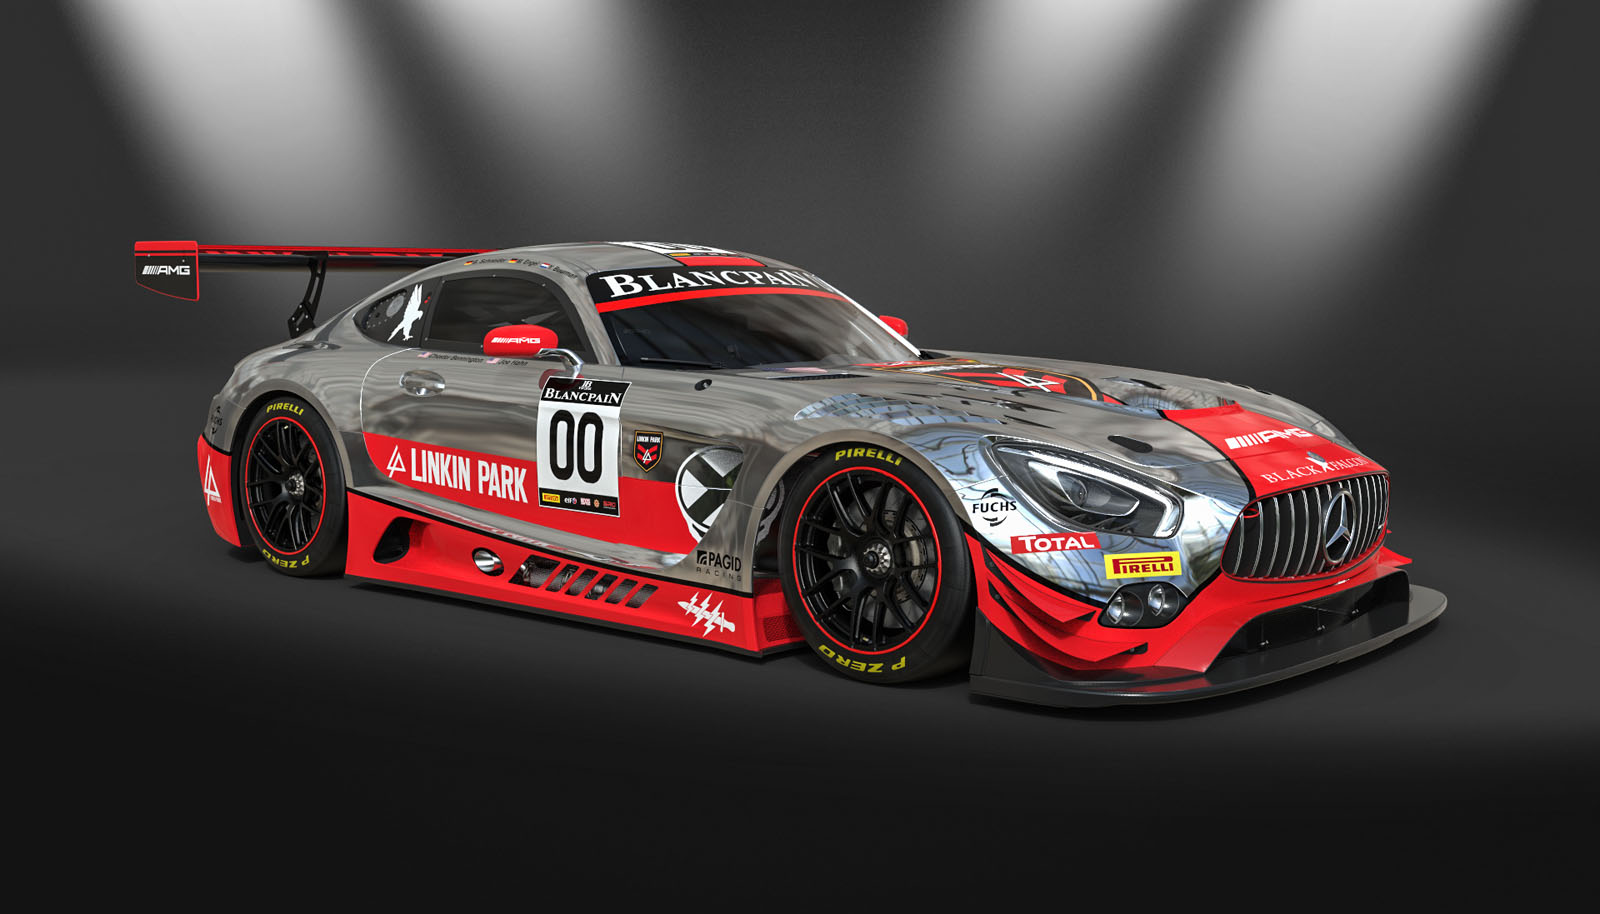 Linkin Park's Mercedes-AMG GT3 Looks Cool But Didn't Fare